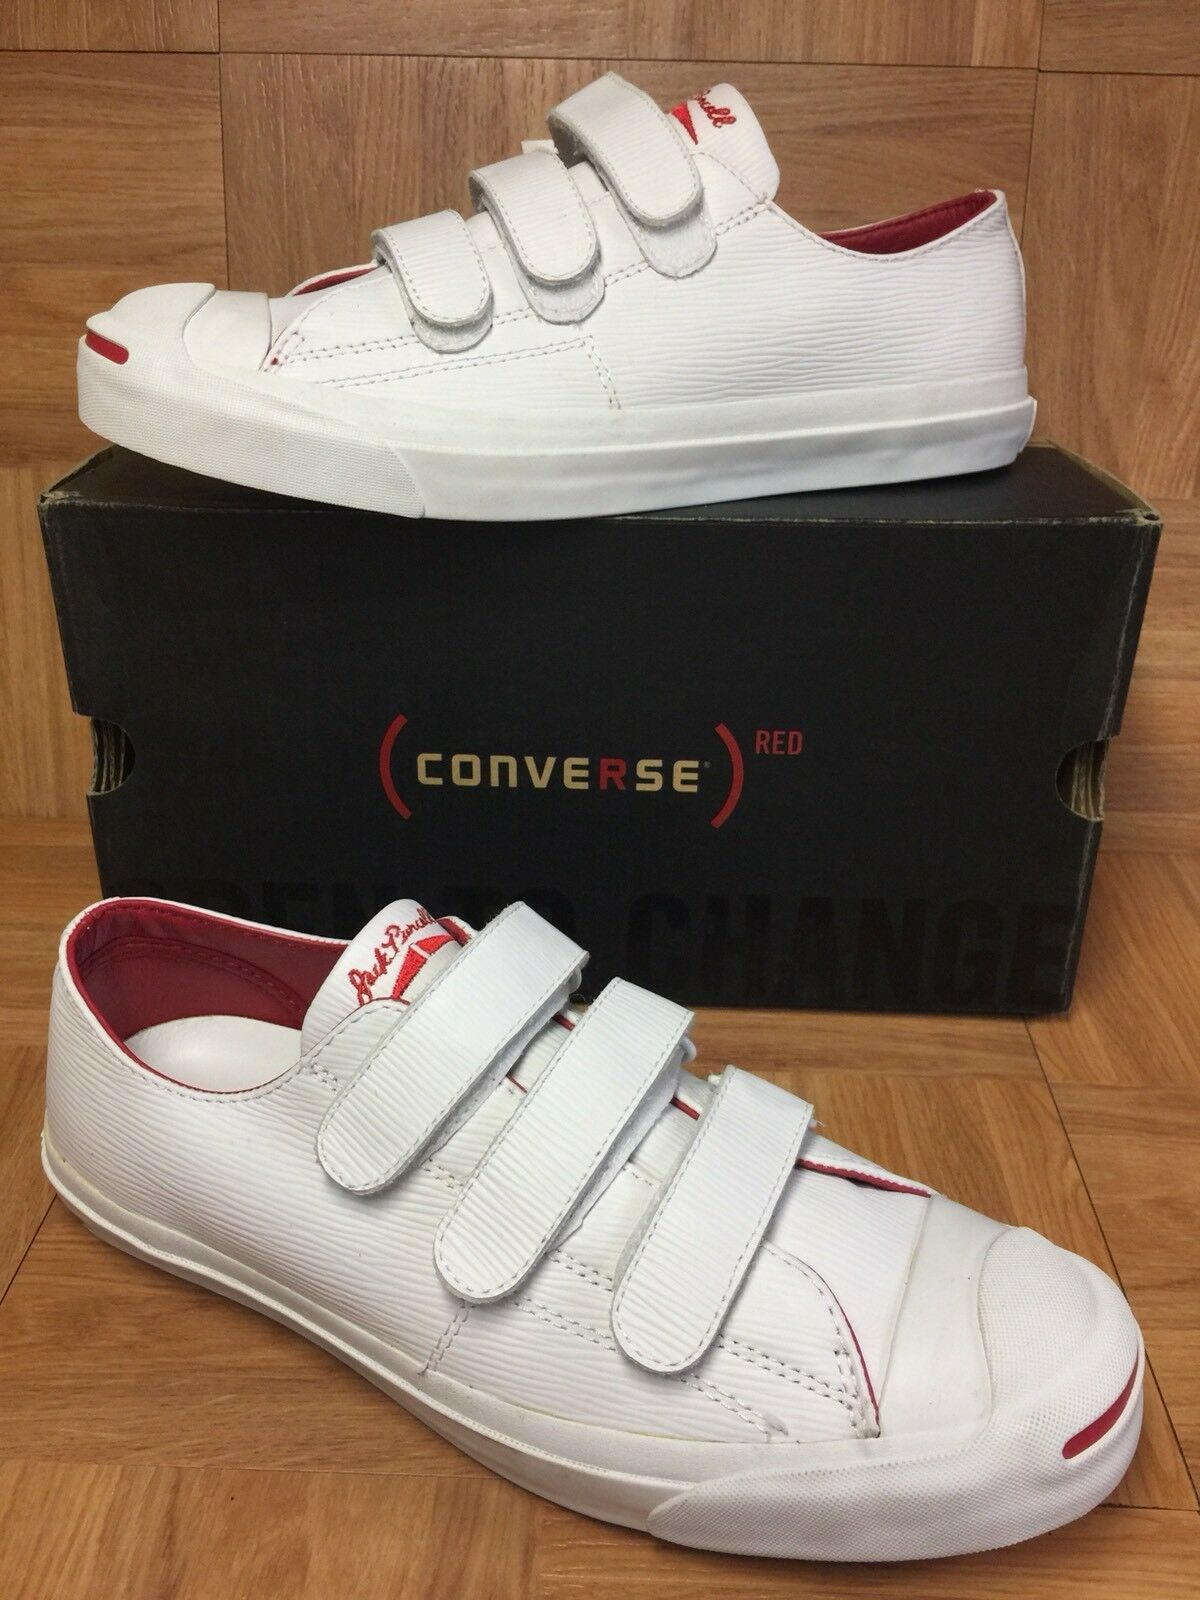 RARE Converse Jack Purcell Red White Leather Ox Sz 10 3V Triple Prison Issue